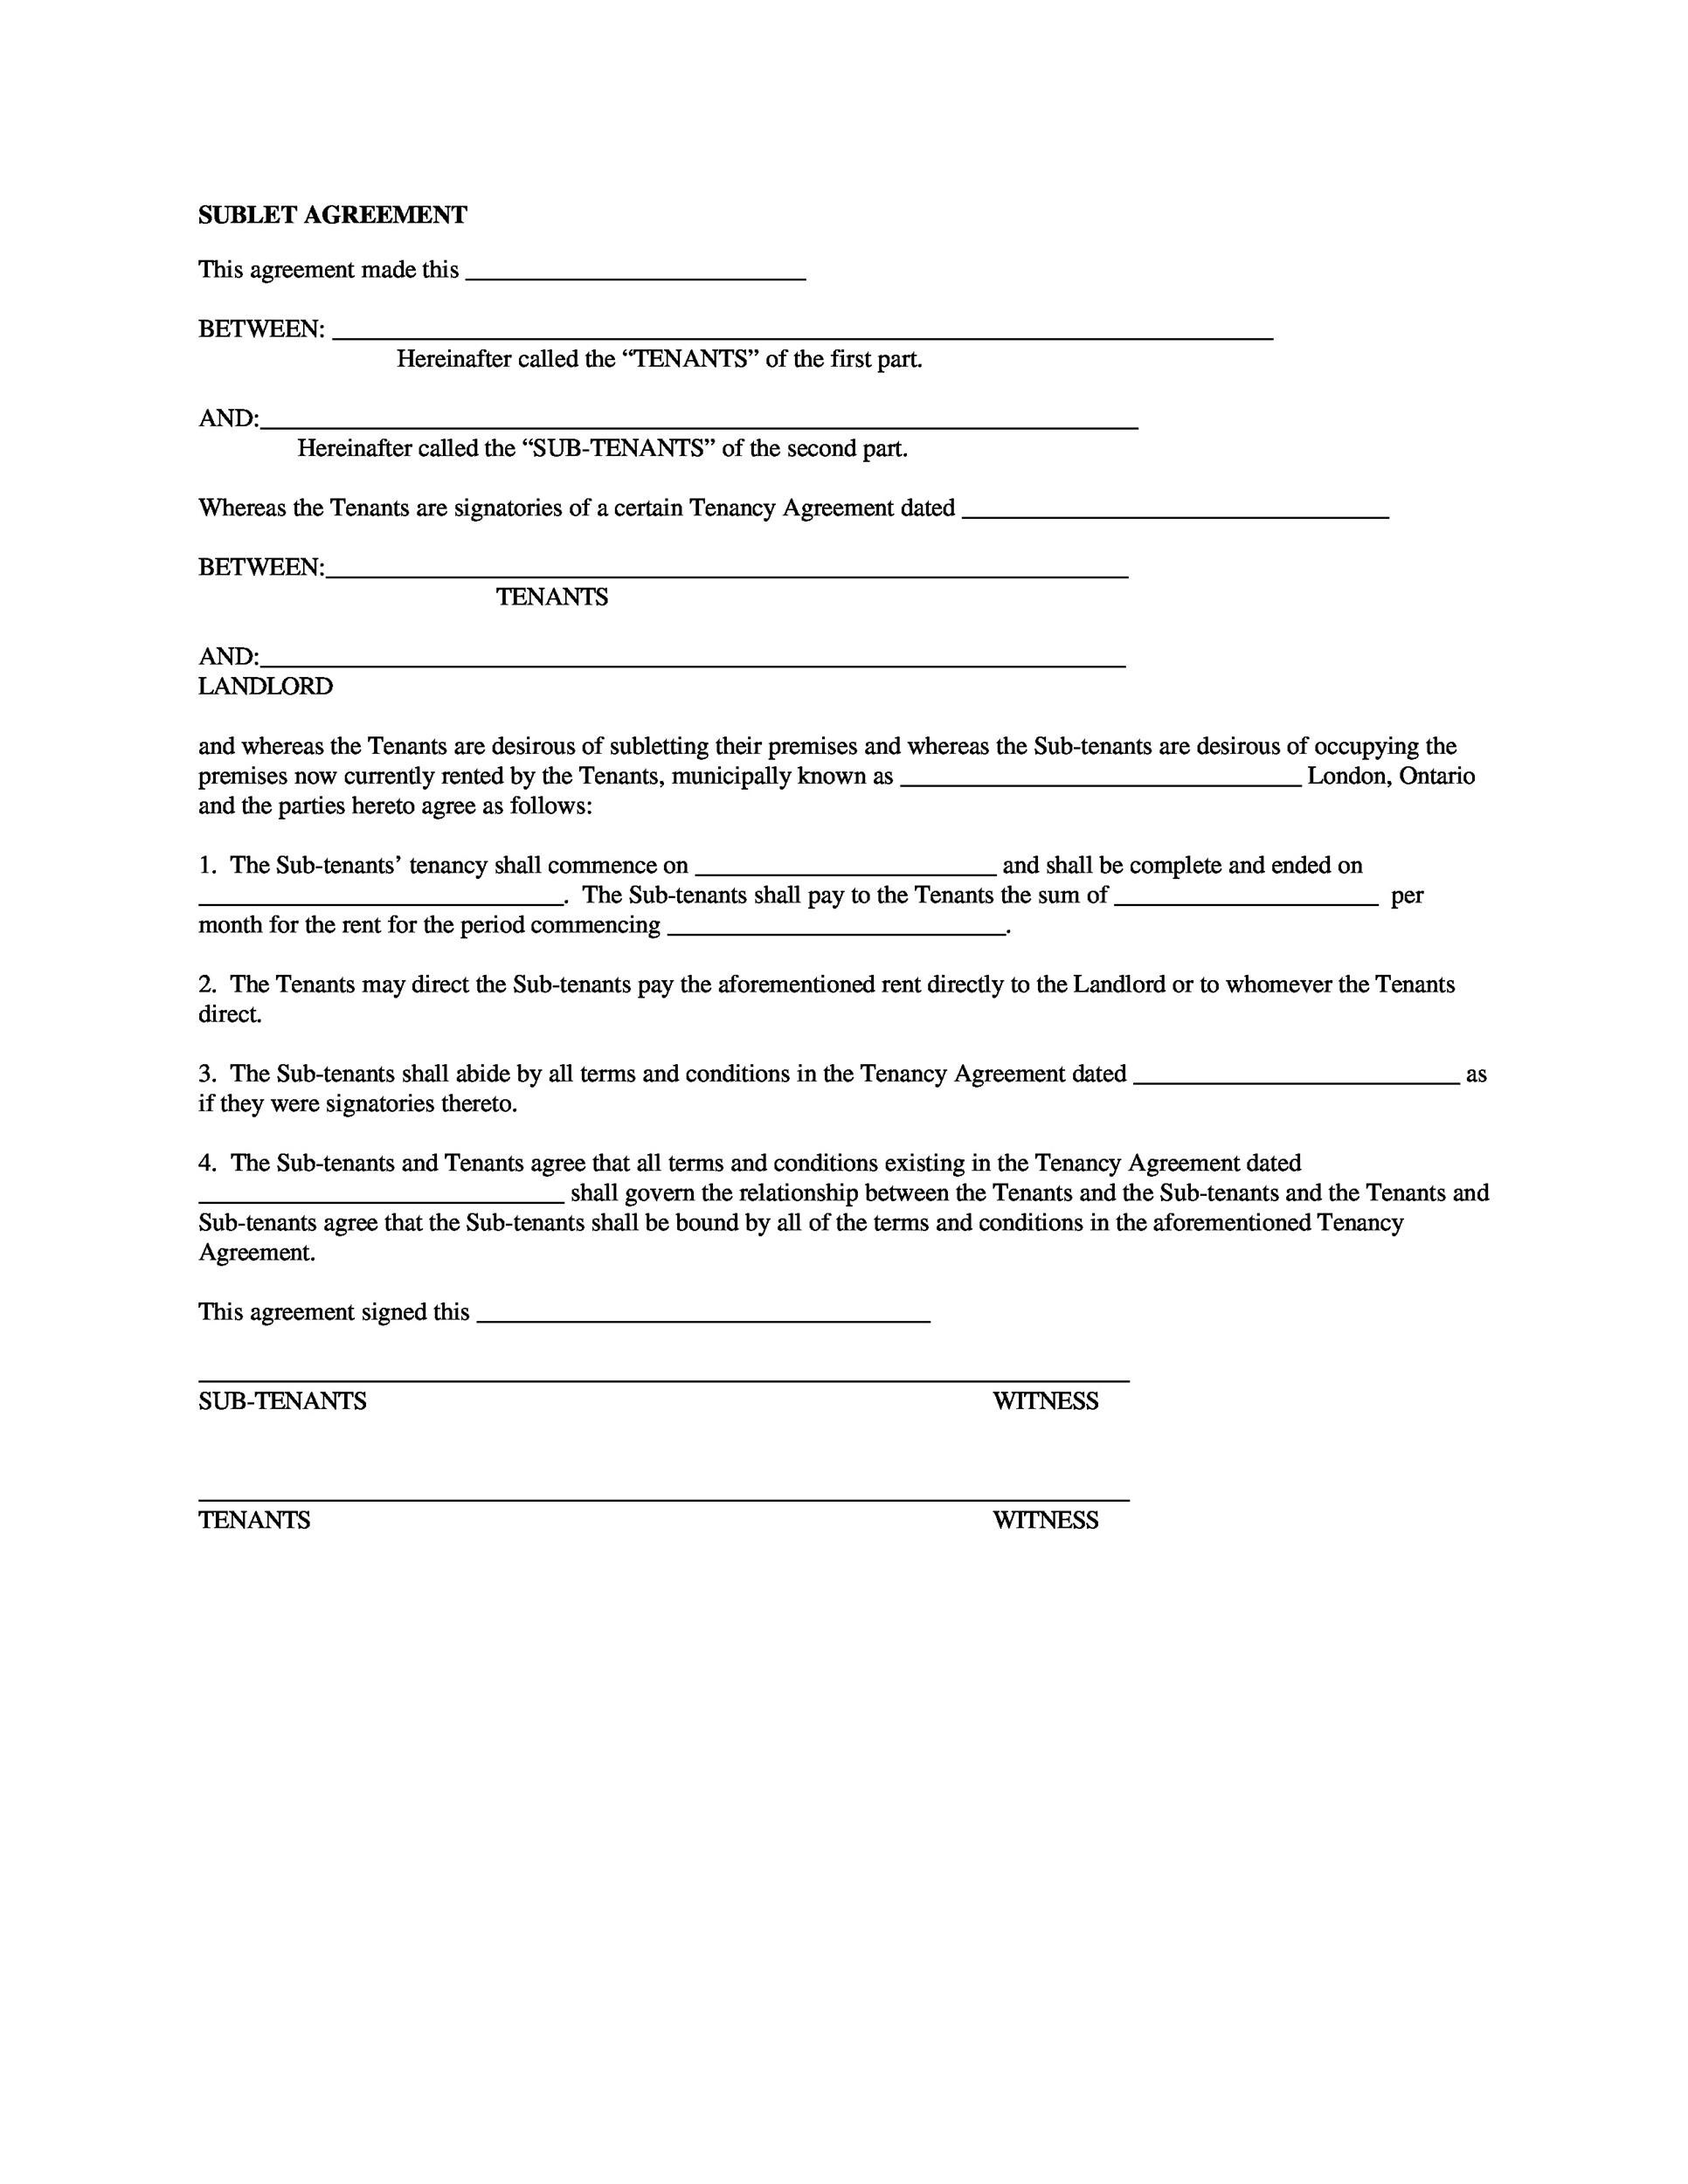 Free Sublease Agreement Template 04